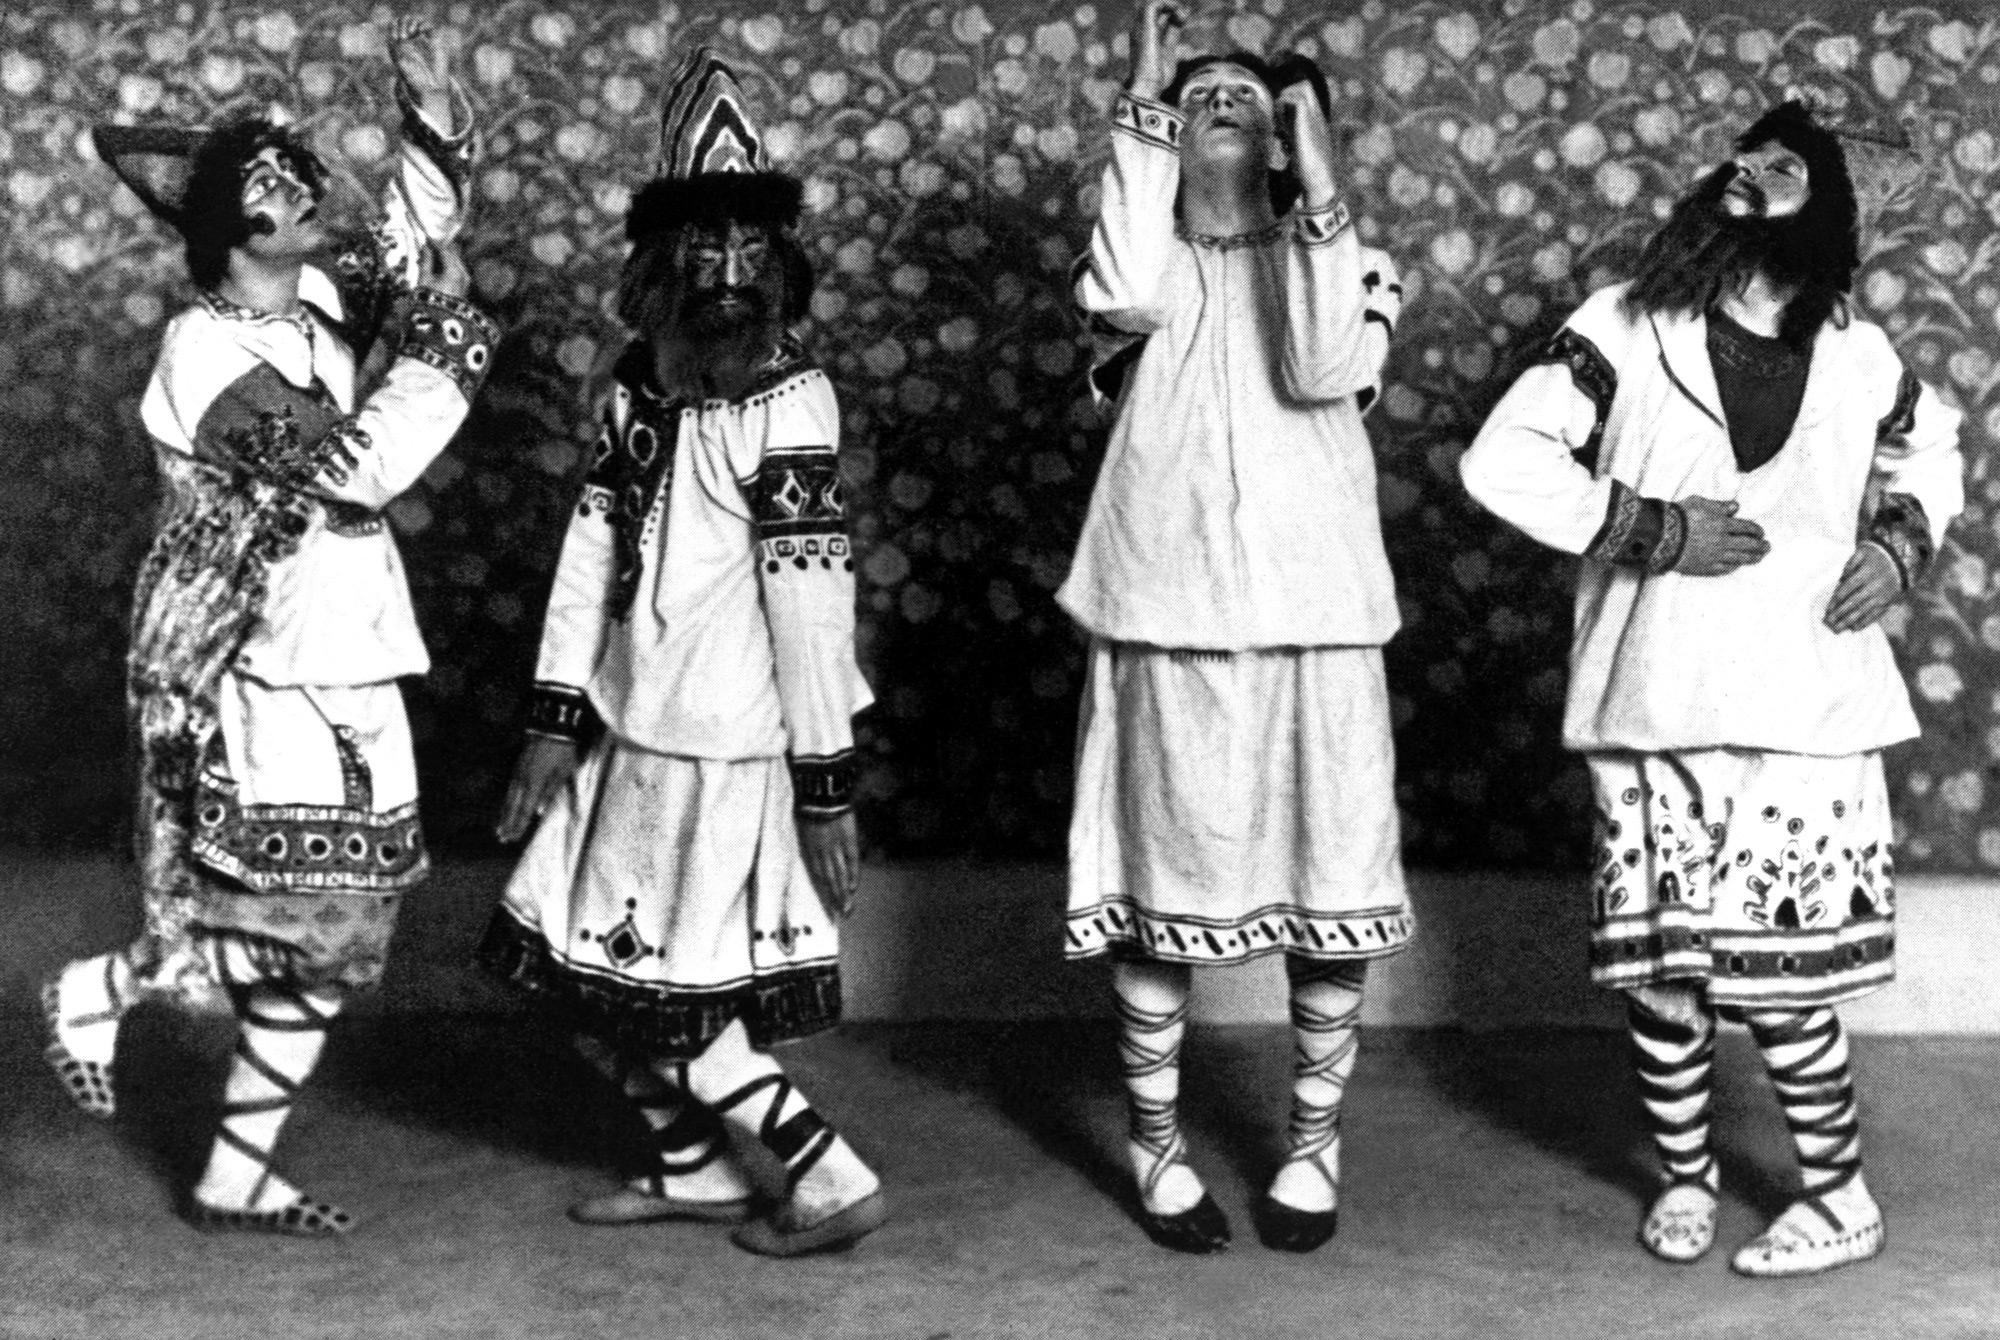 Photograph of a scene from Stravinsky's ballet The Rite of Spring, 1913